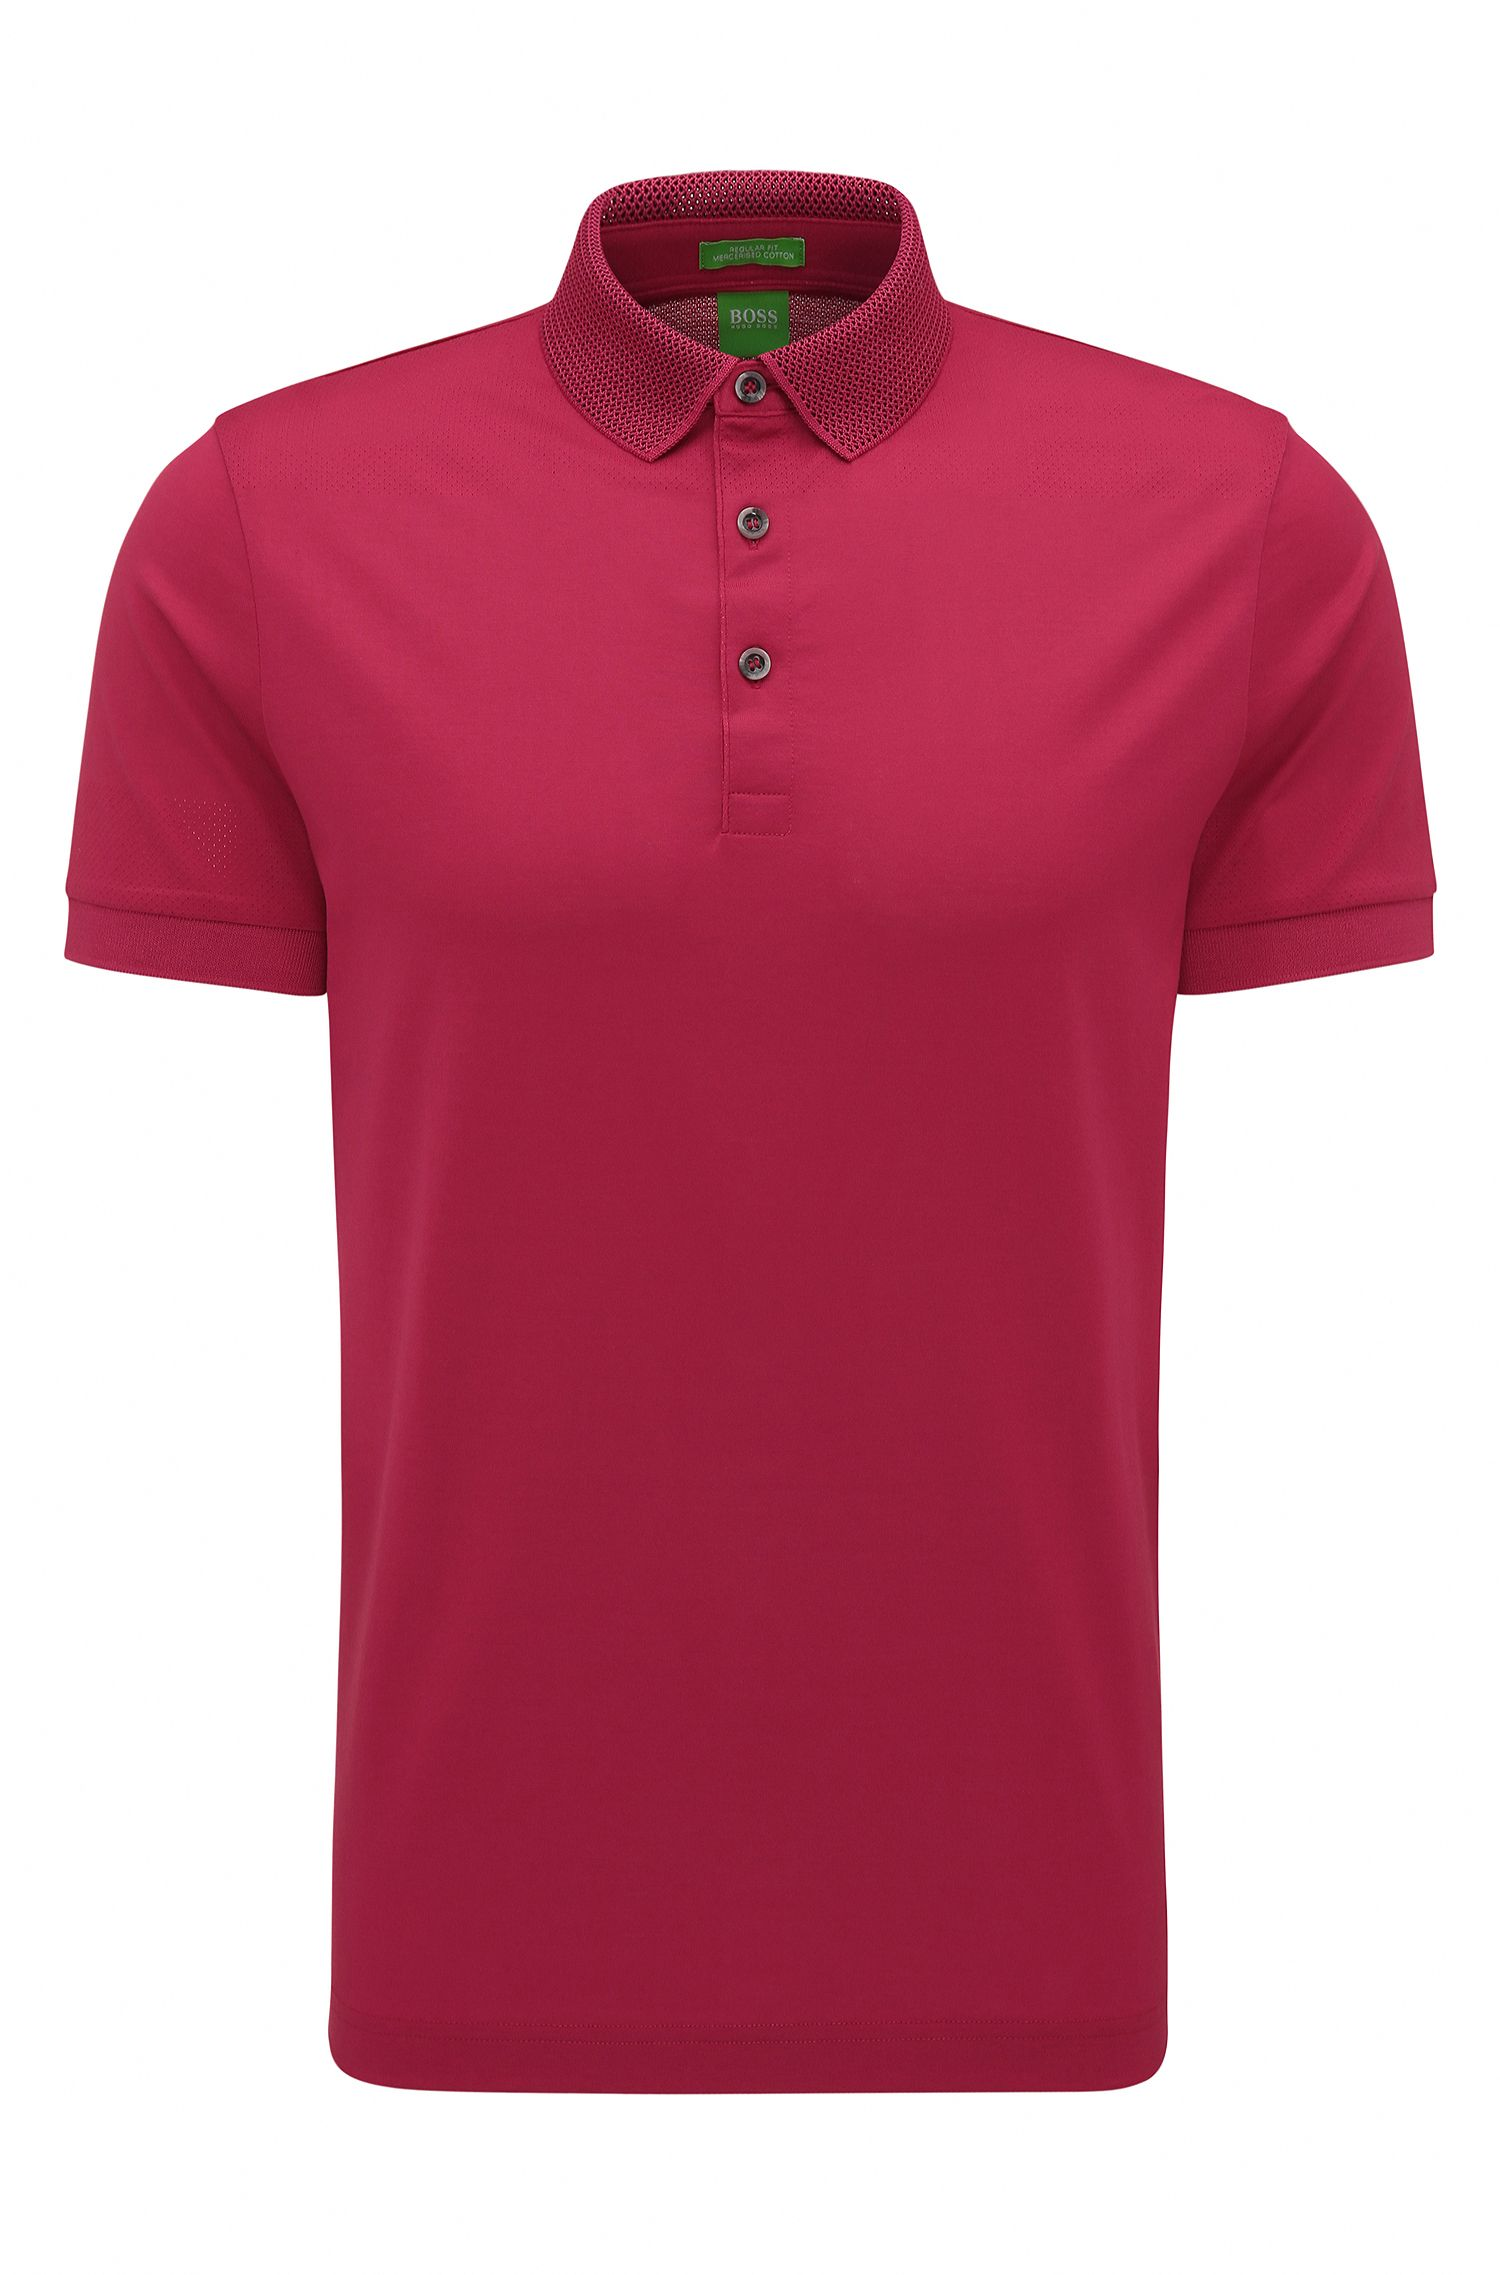 Mercerized Cotton Polo Shirt, Slim Fit | C-Pirenzo